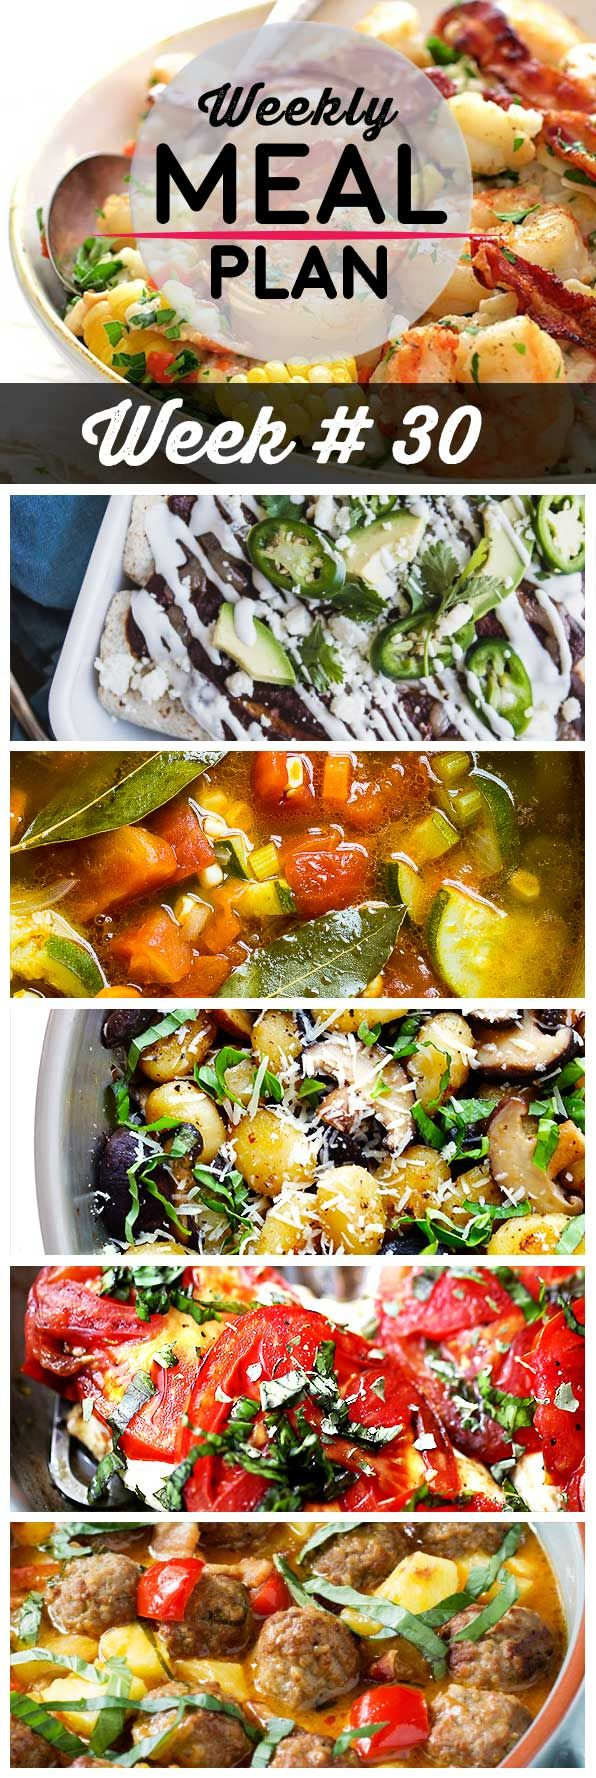 Weekly Meal Plan #30! A meal plan to help you keep things tasty each week, including shrimp and corn risotto, simple mole chicken enchiladas, late summer vegetable soup, and more!   HomemadeHooplah.com